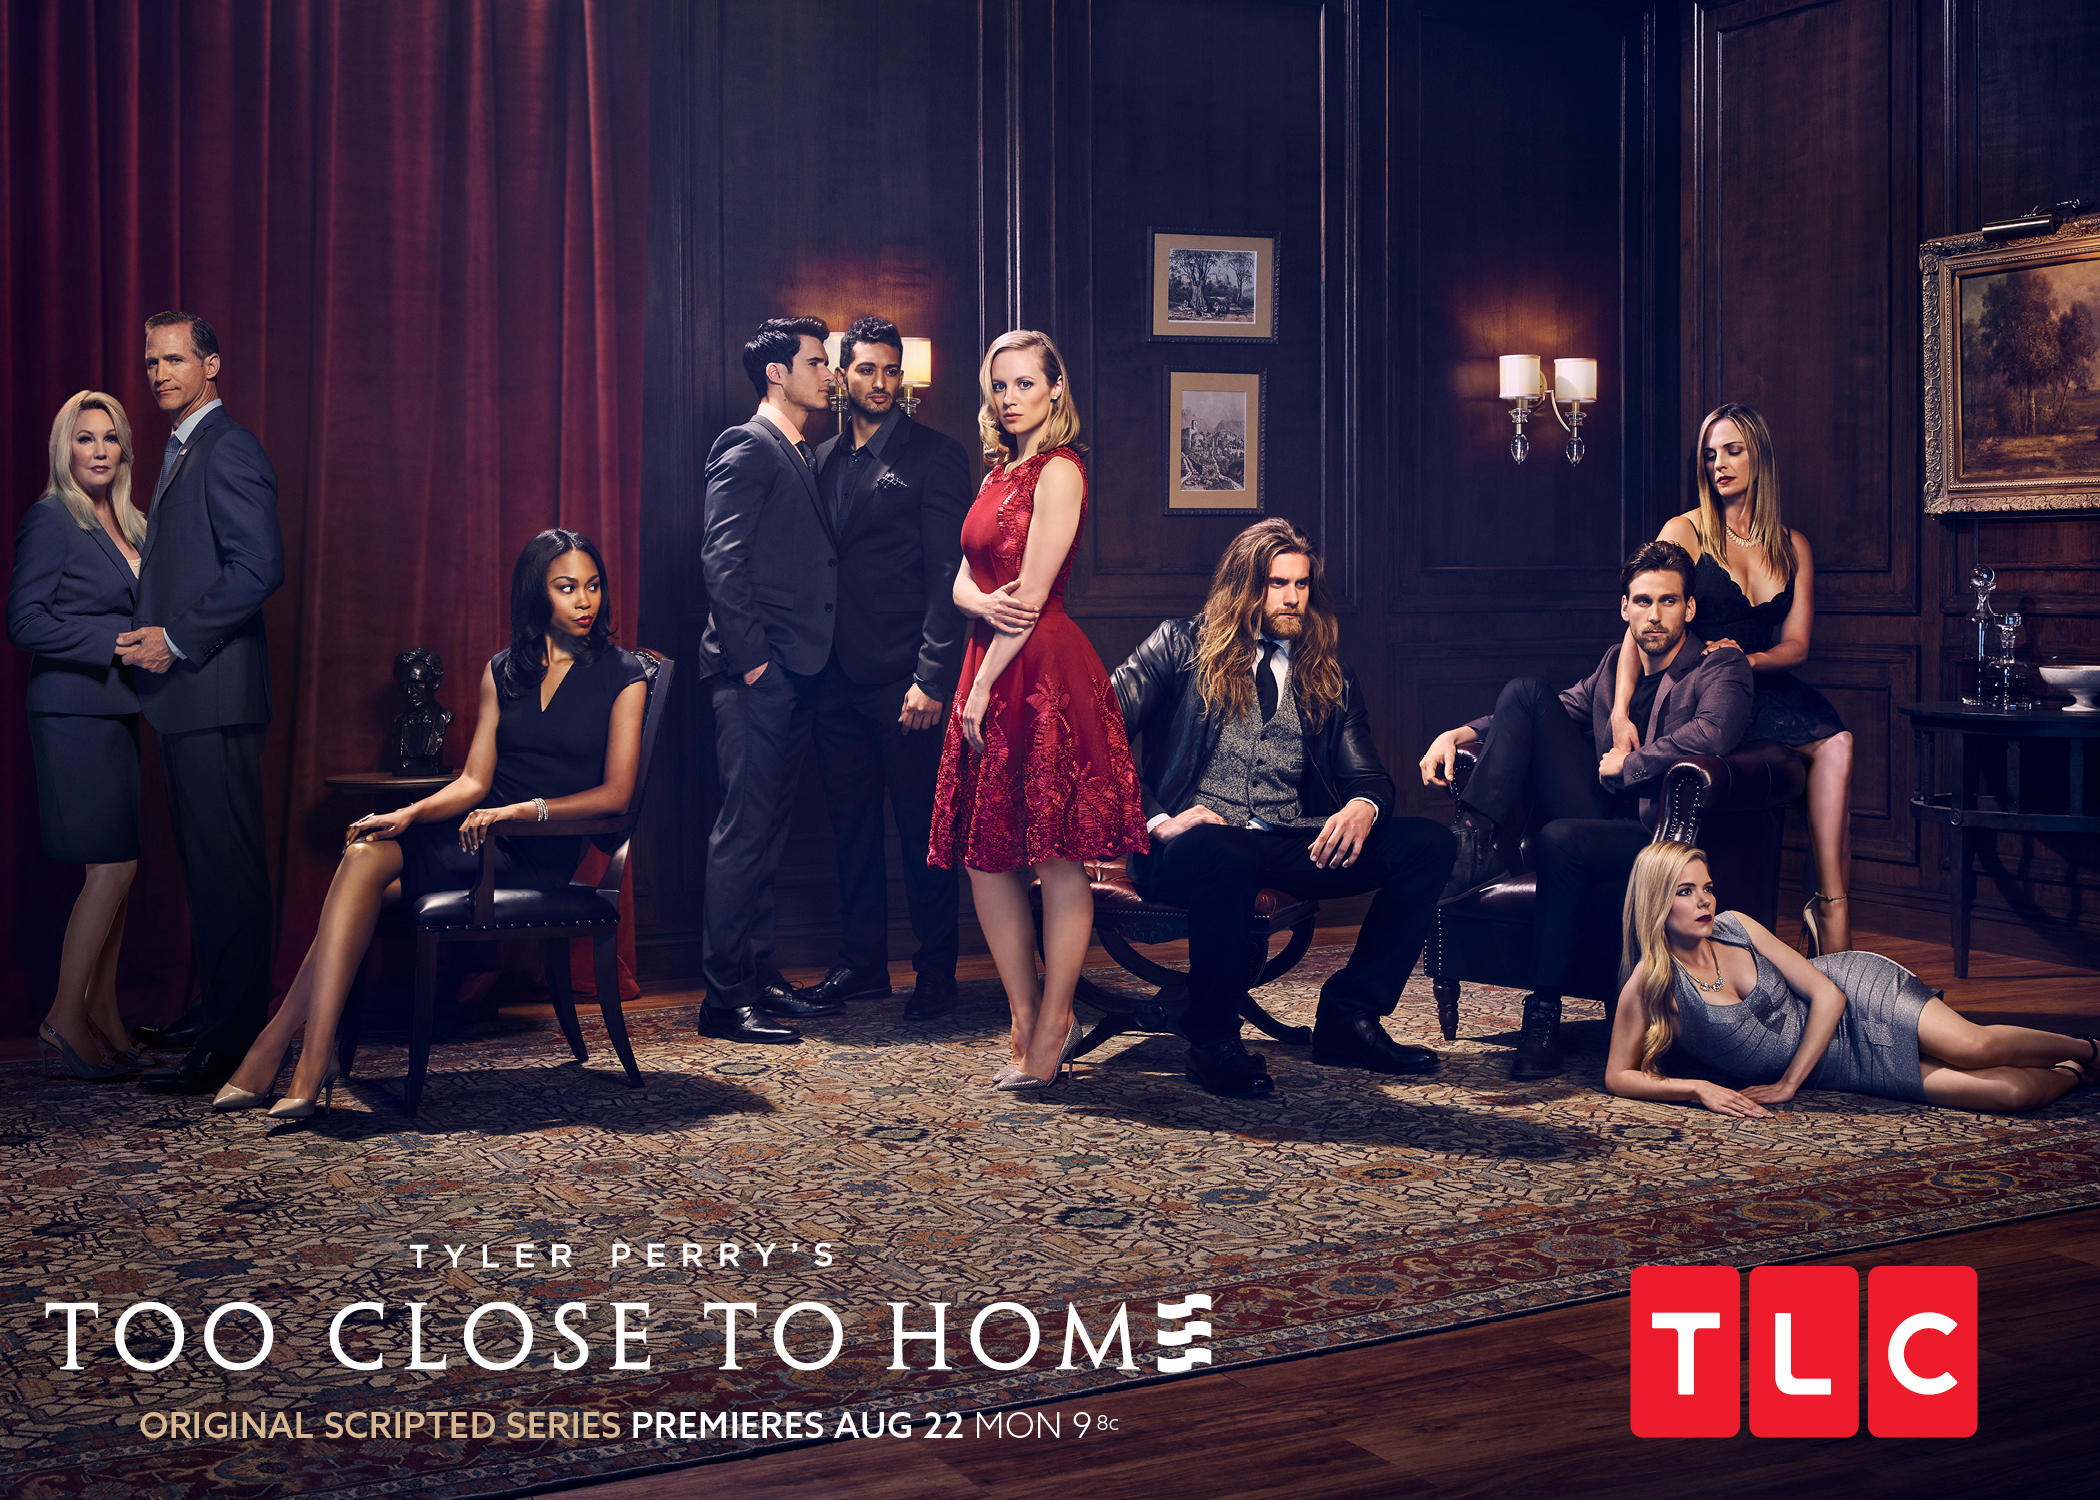 About tyler perry s too close to home too close to home tlc - Tlc house shows ...